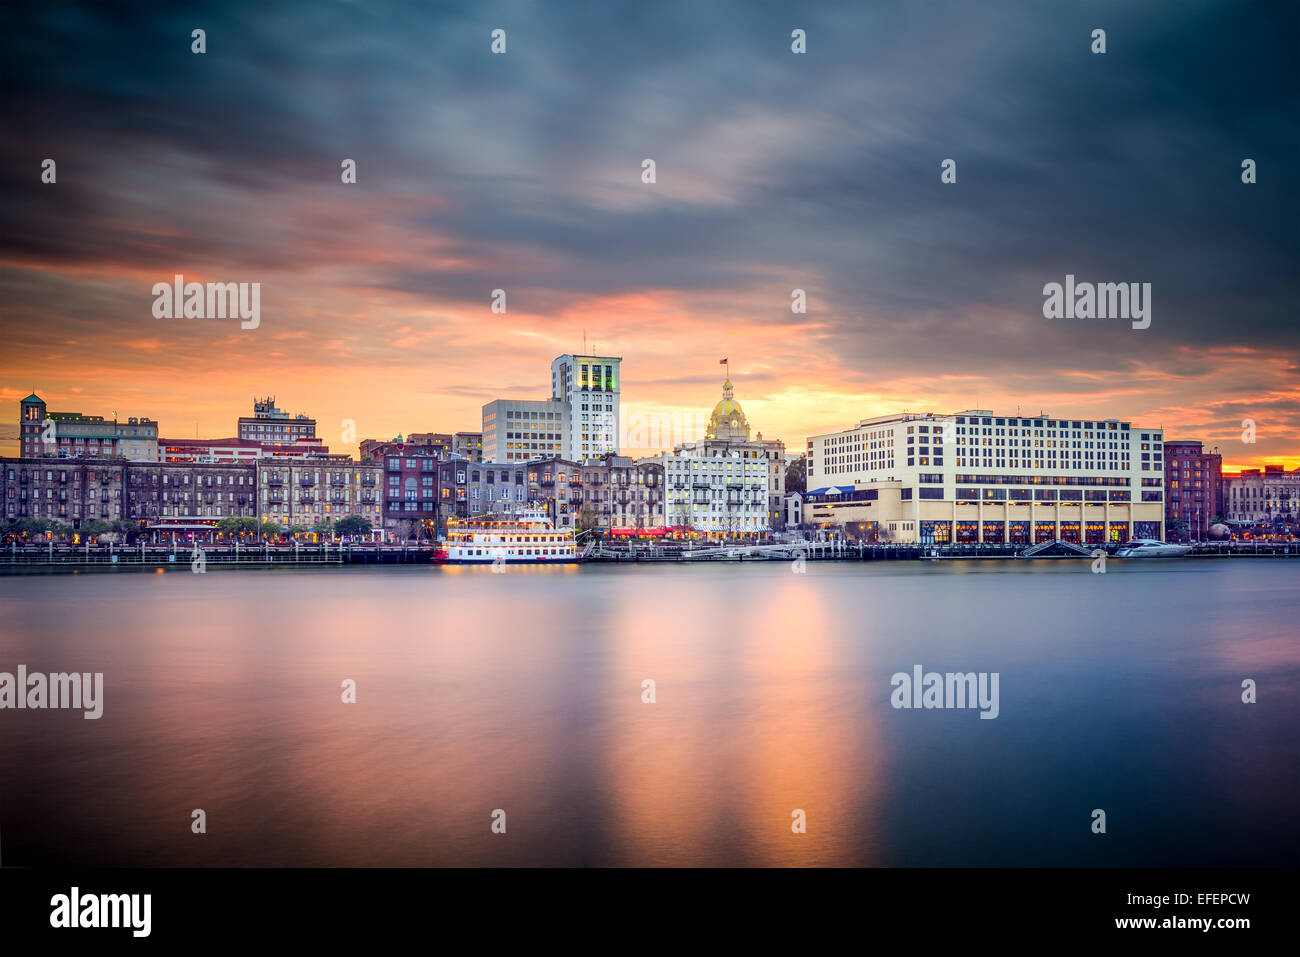 Savannah, Georgia, USA riverfront skyline. - Stock Image